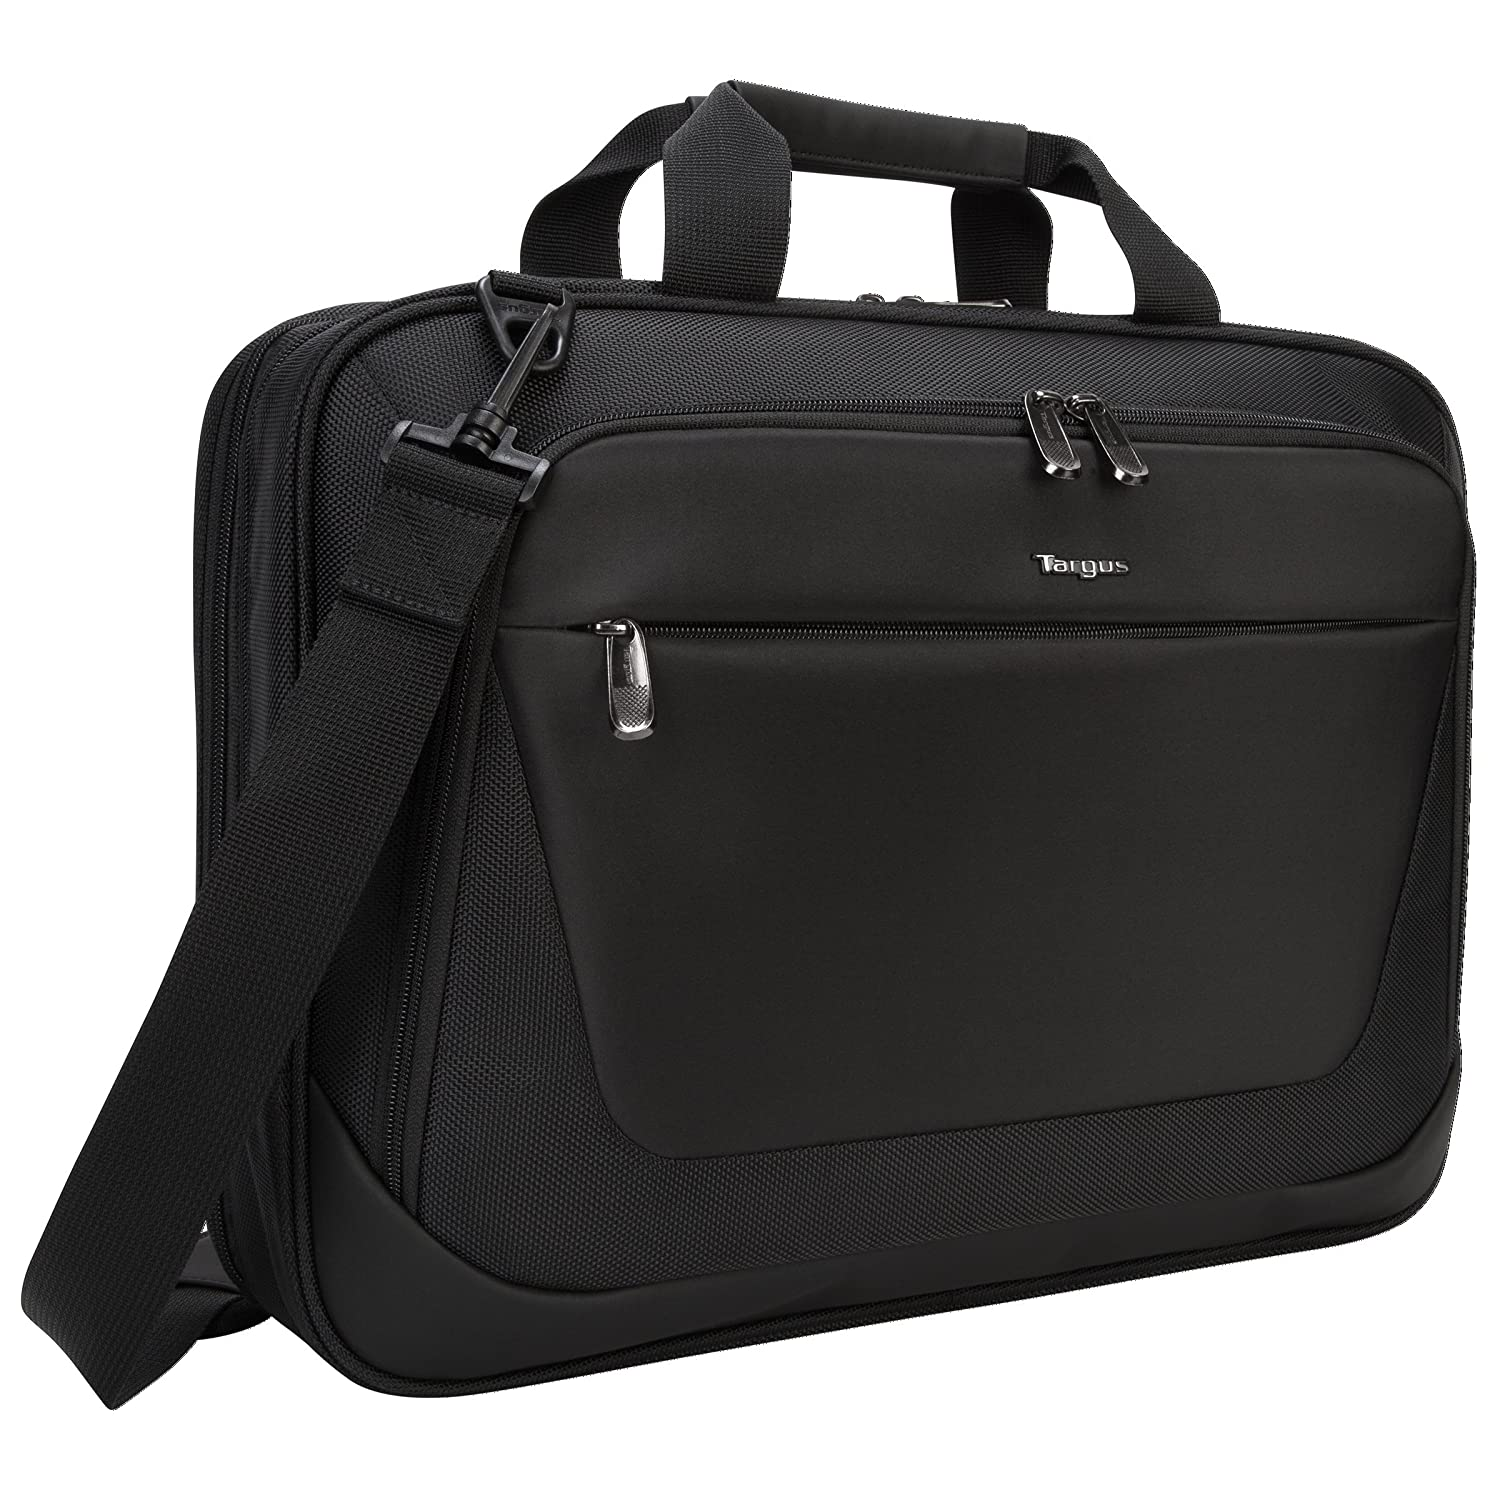 Targus CityLite Laptop Bag for 15.6 Inch Laptop Black TBT053US